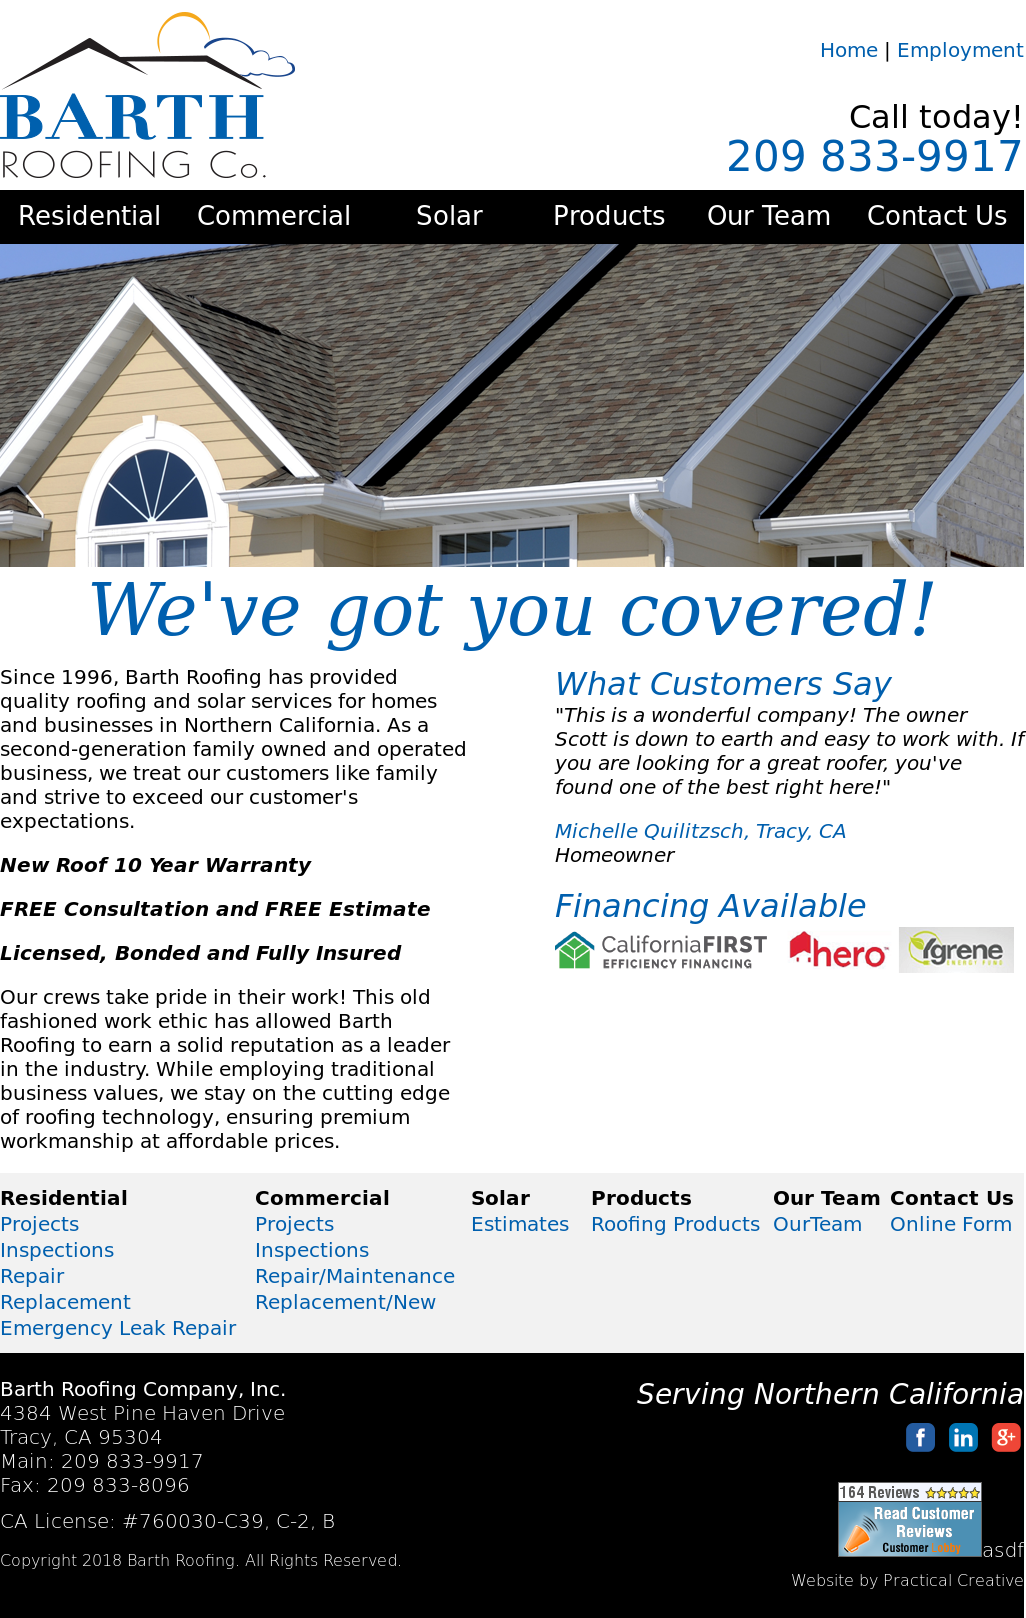 Barth Roofing Website History